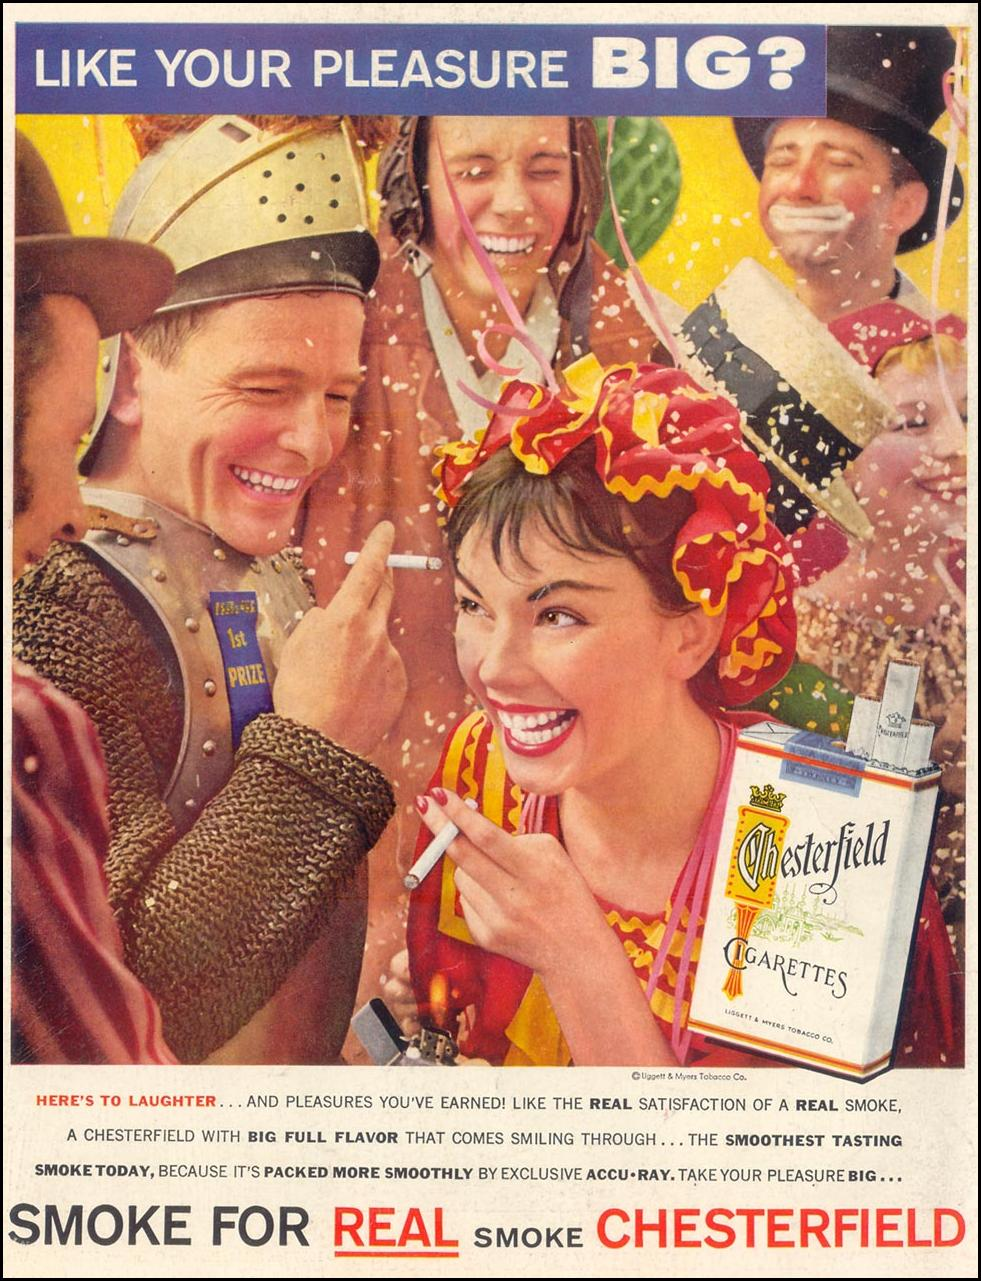 CHESTERFIELD CIGARETTES LIFE 01/21/1957 BACK COVER